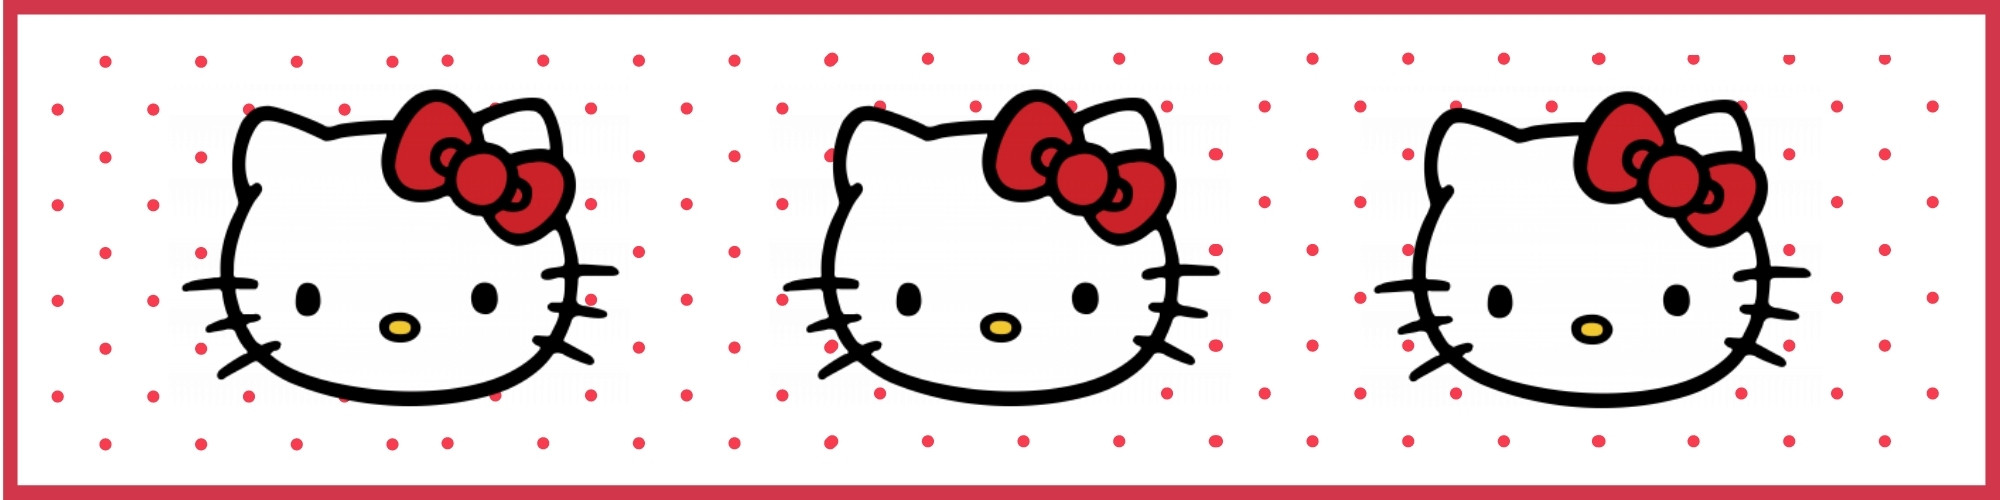 hello-kitty-email-banners.jpg